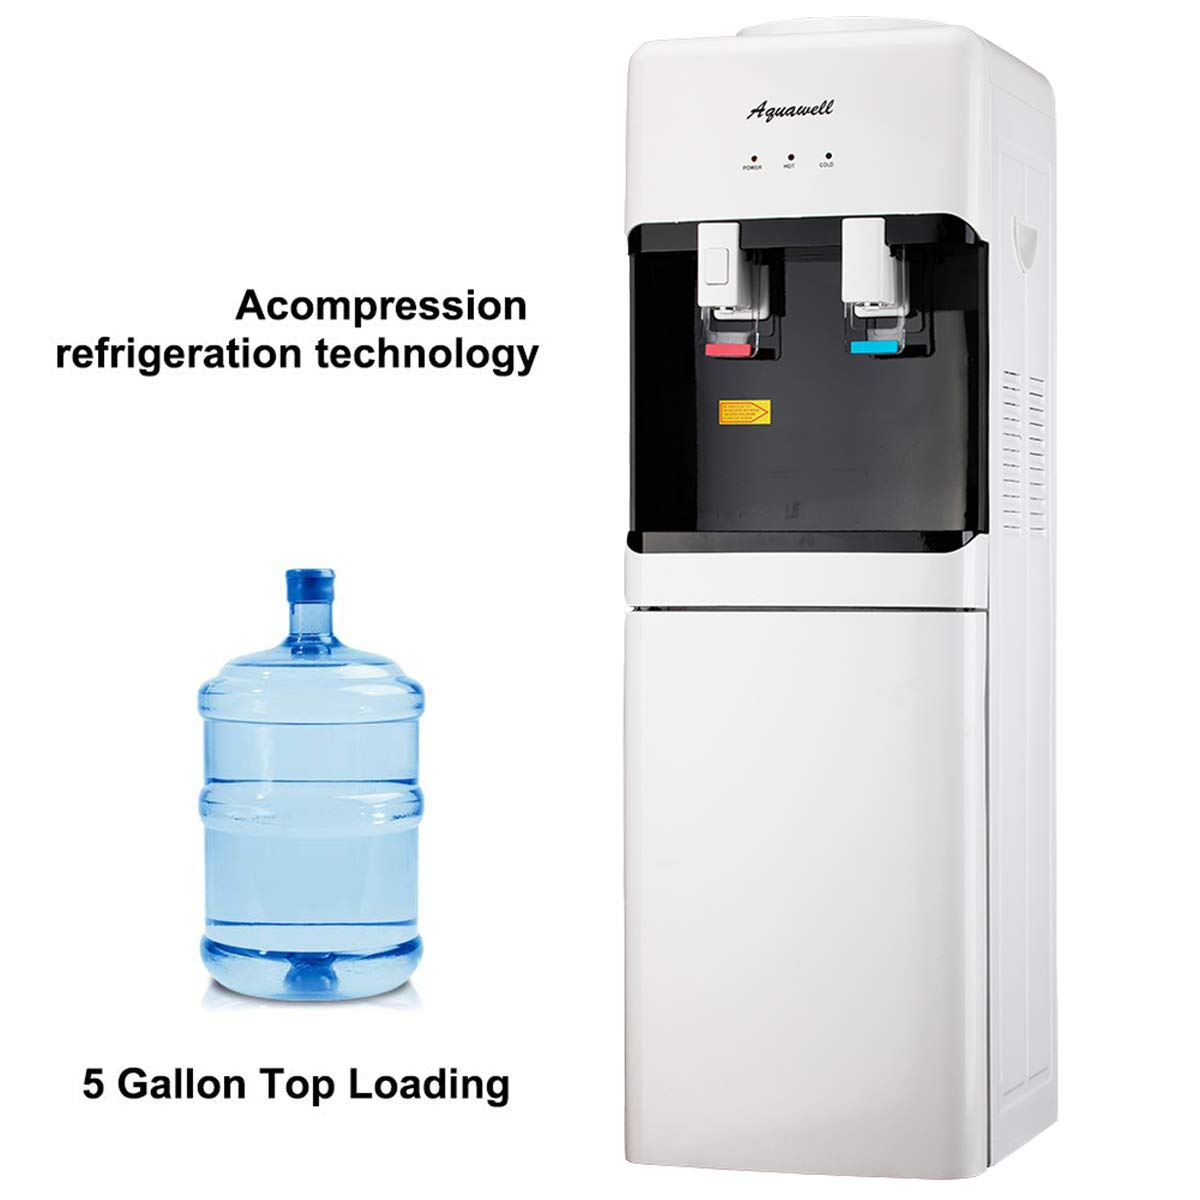 AQUAWELL Water Dispenser, 5 Gallon Top Loading Hot & Cold Water Dispenser, Freestanding with Storage Cabinet, Compression Refrigeration Technology, Stainless Steel White by AQUAWELL